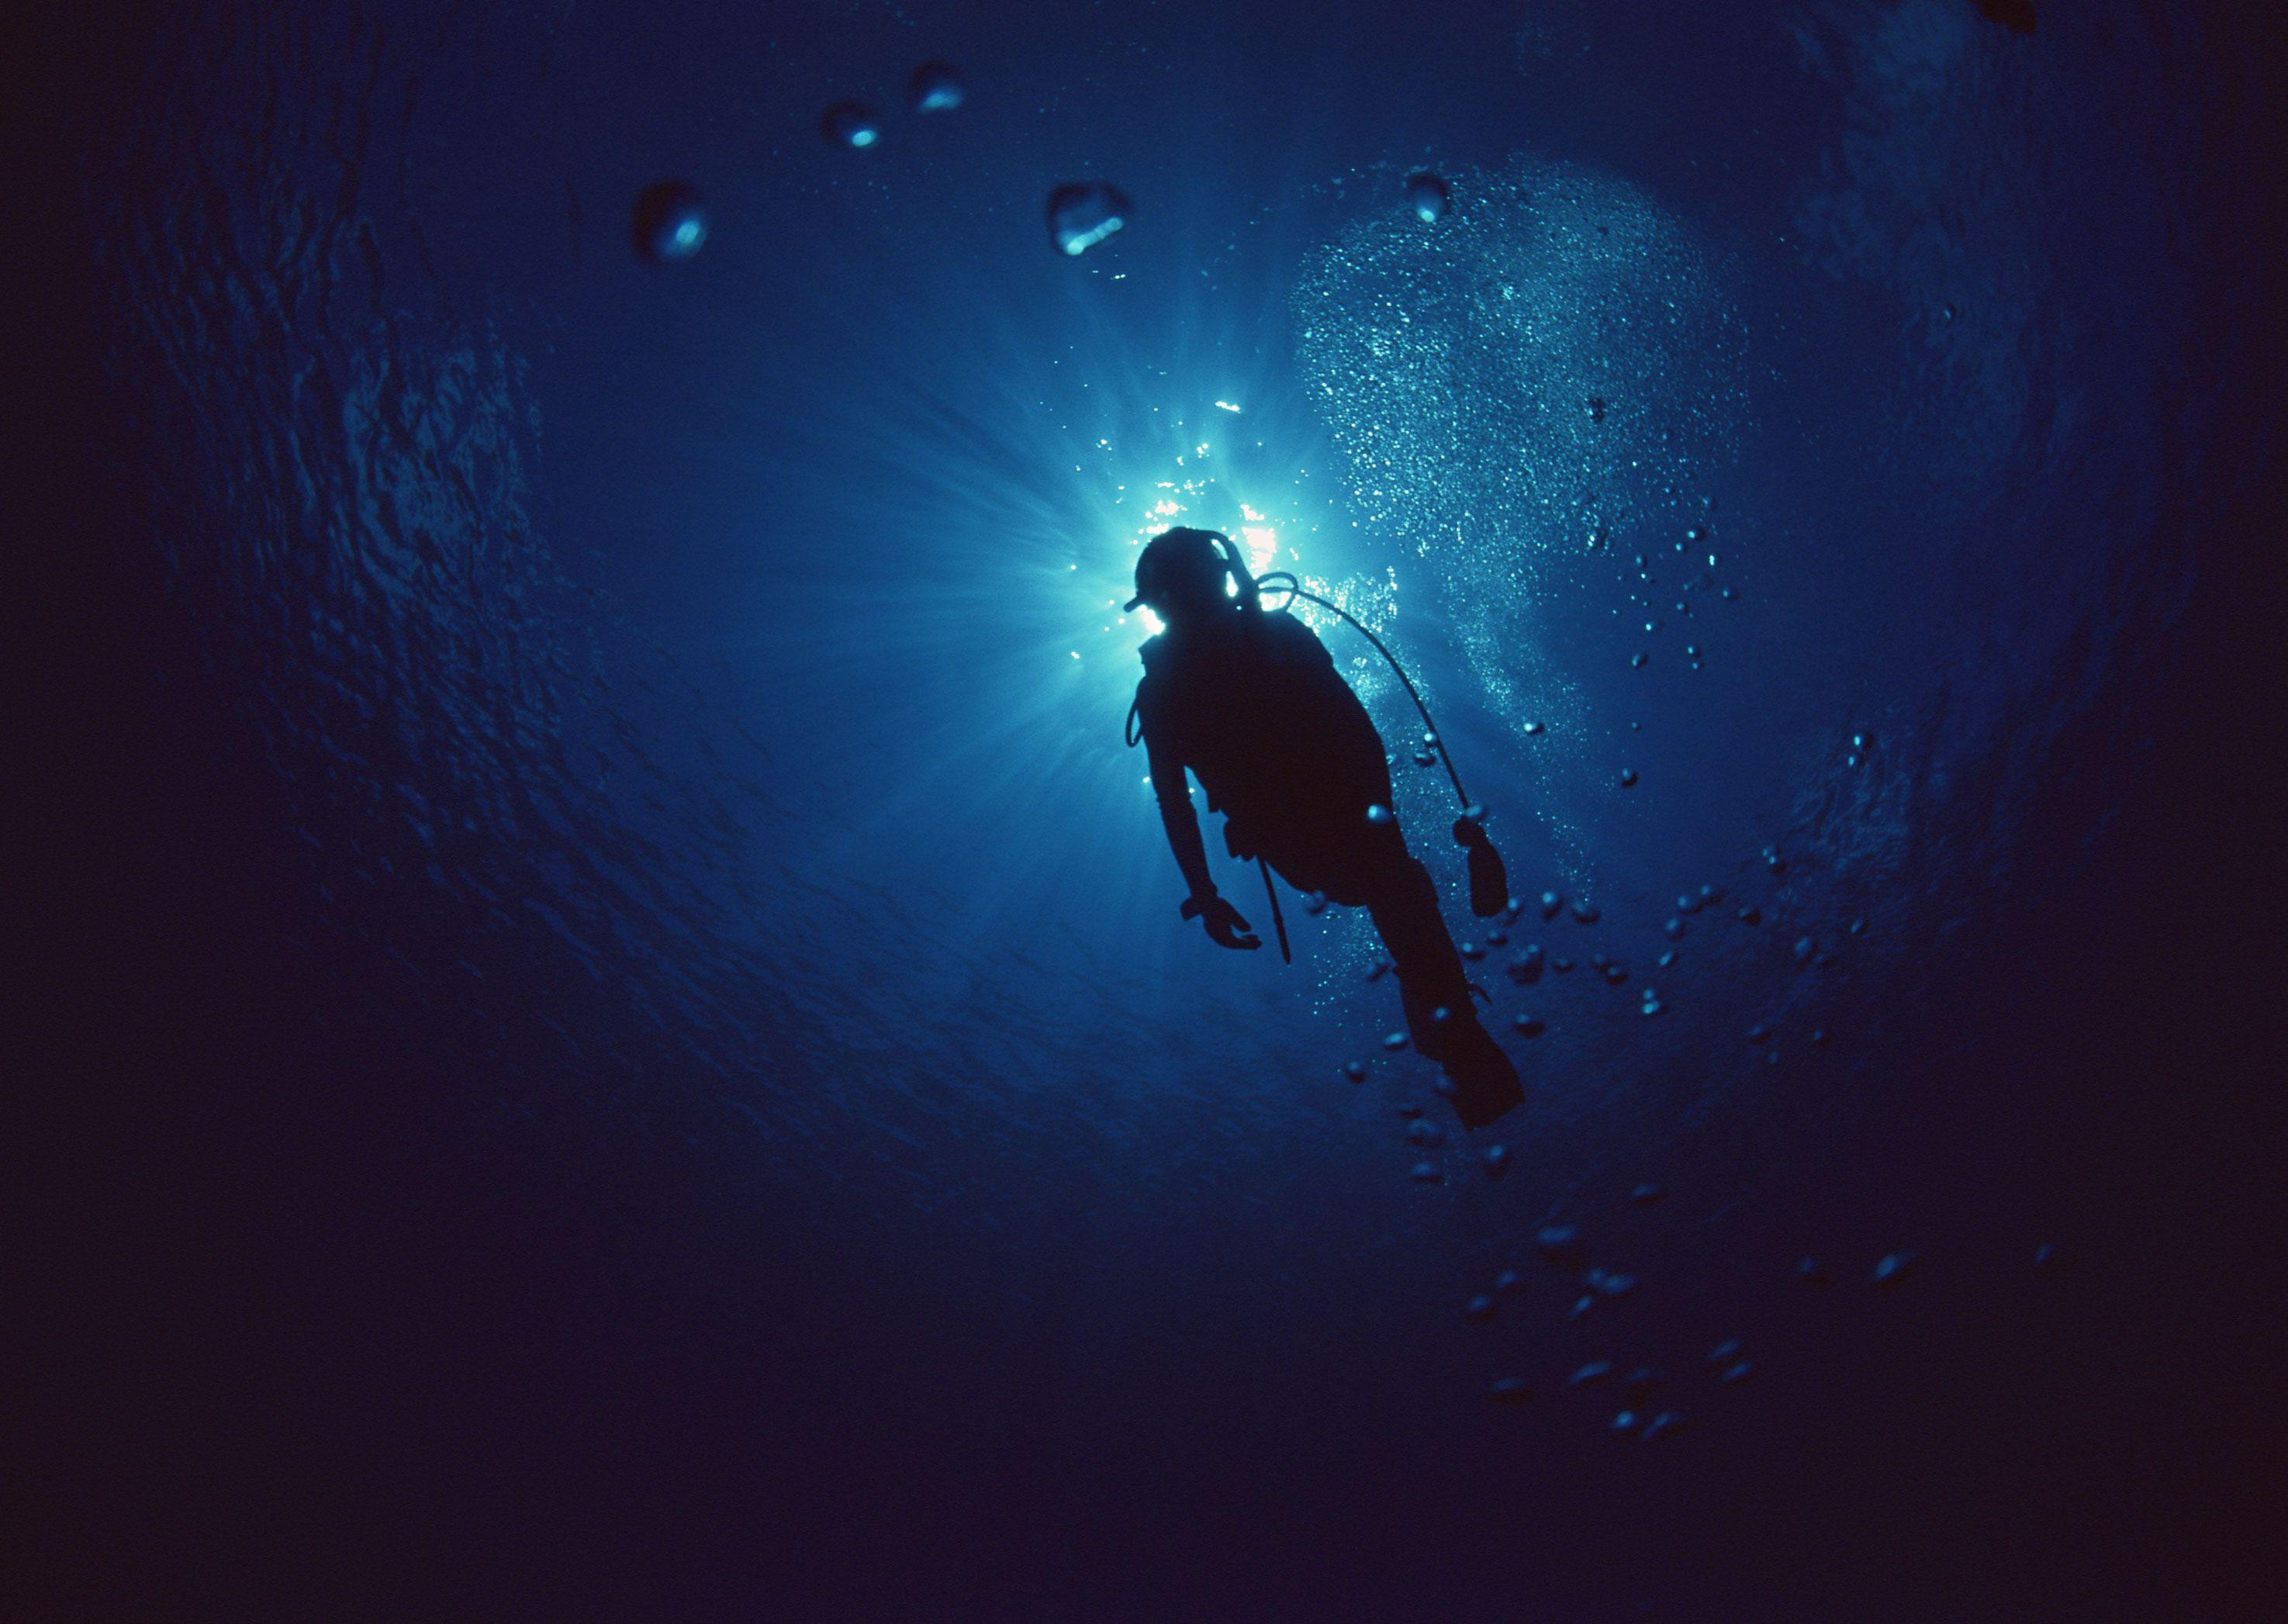 scuba diving experience essay Virgin experience days is the perfect place for great gift ideas click to find scuba diving experiences that are certain to make a great gift.